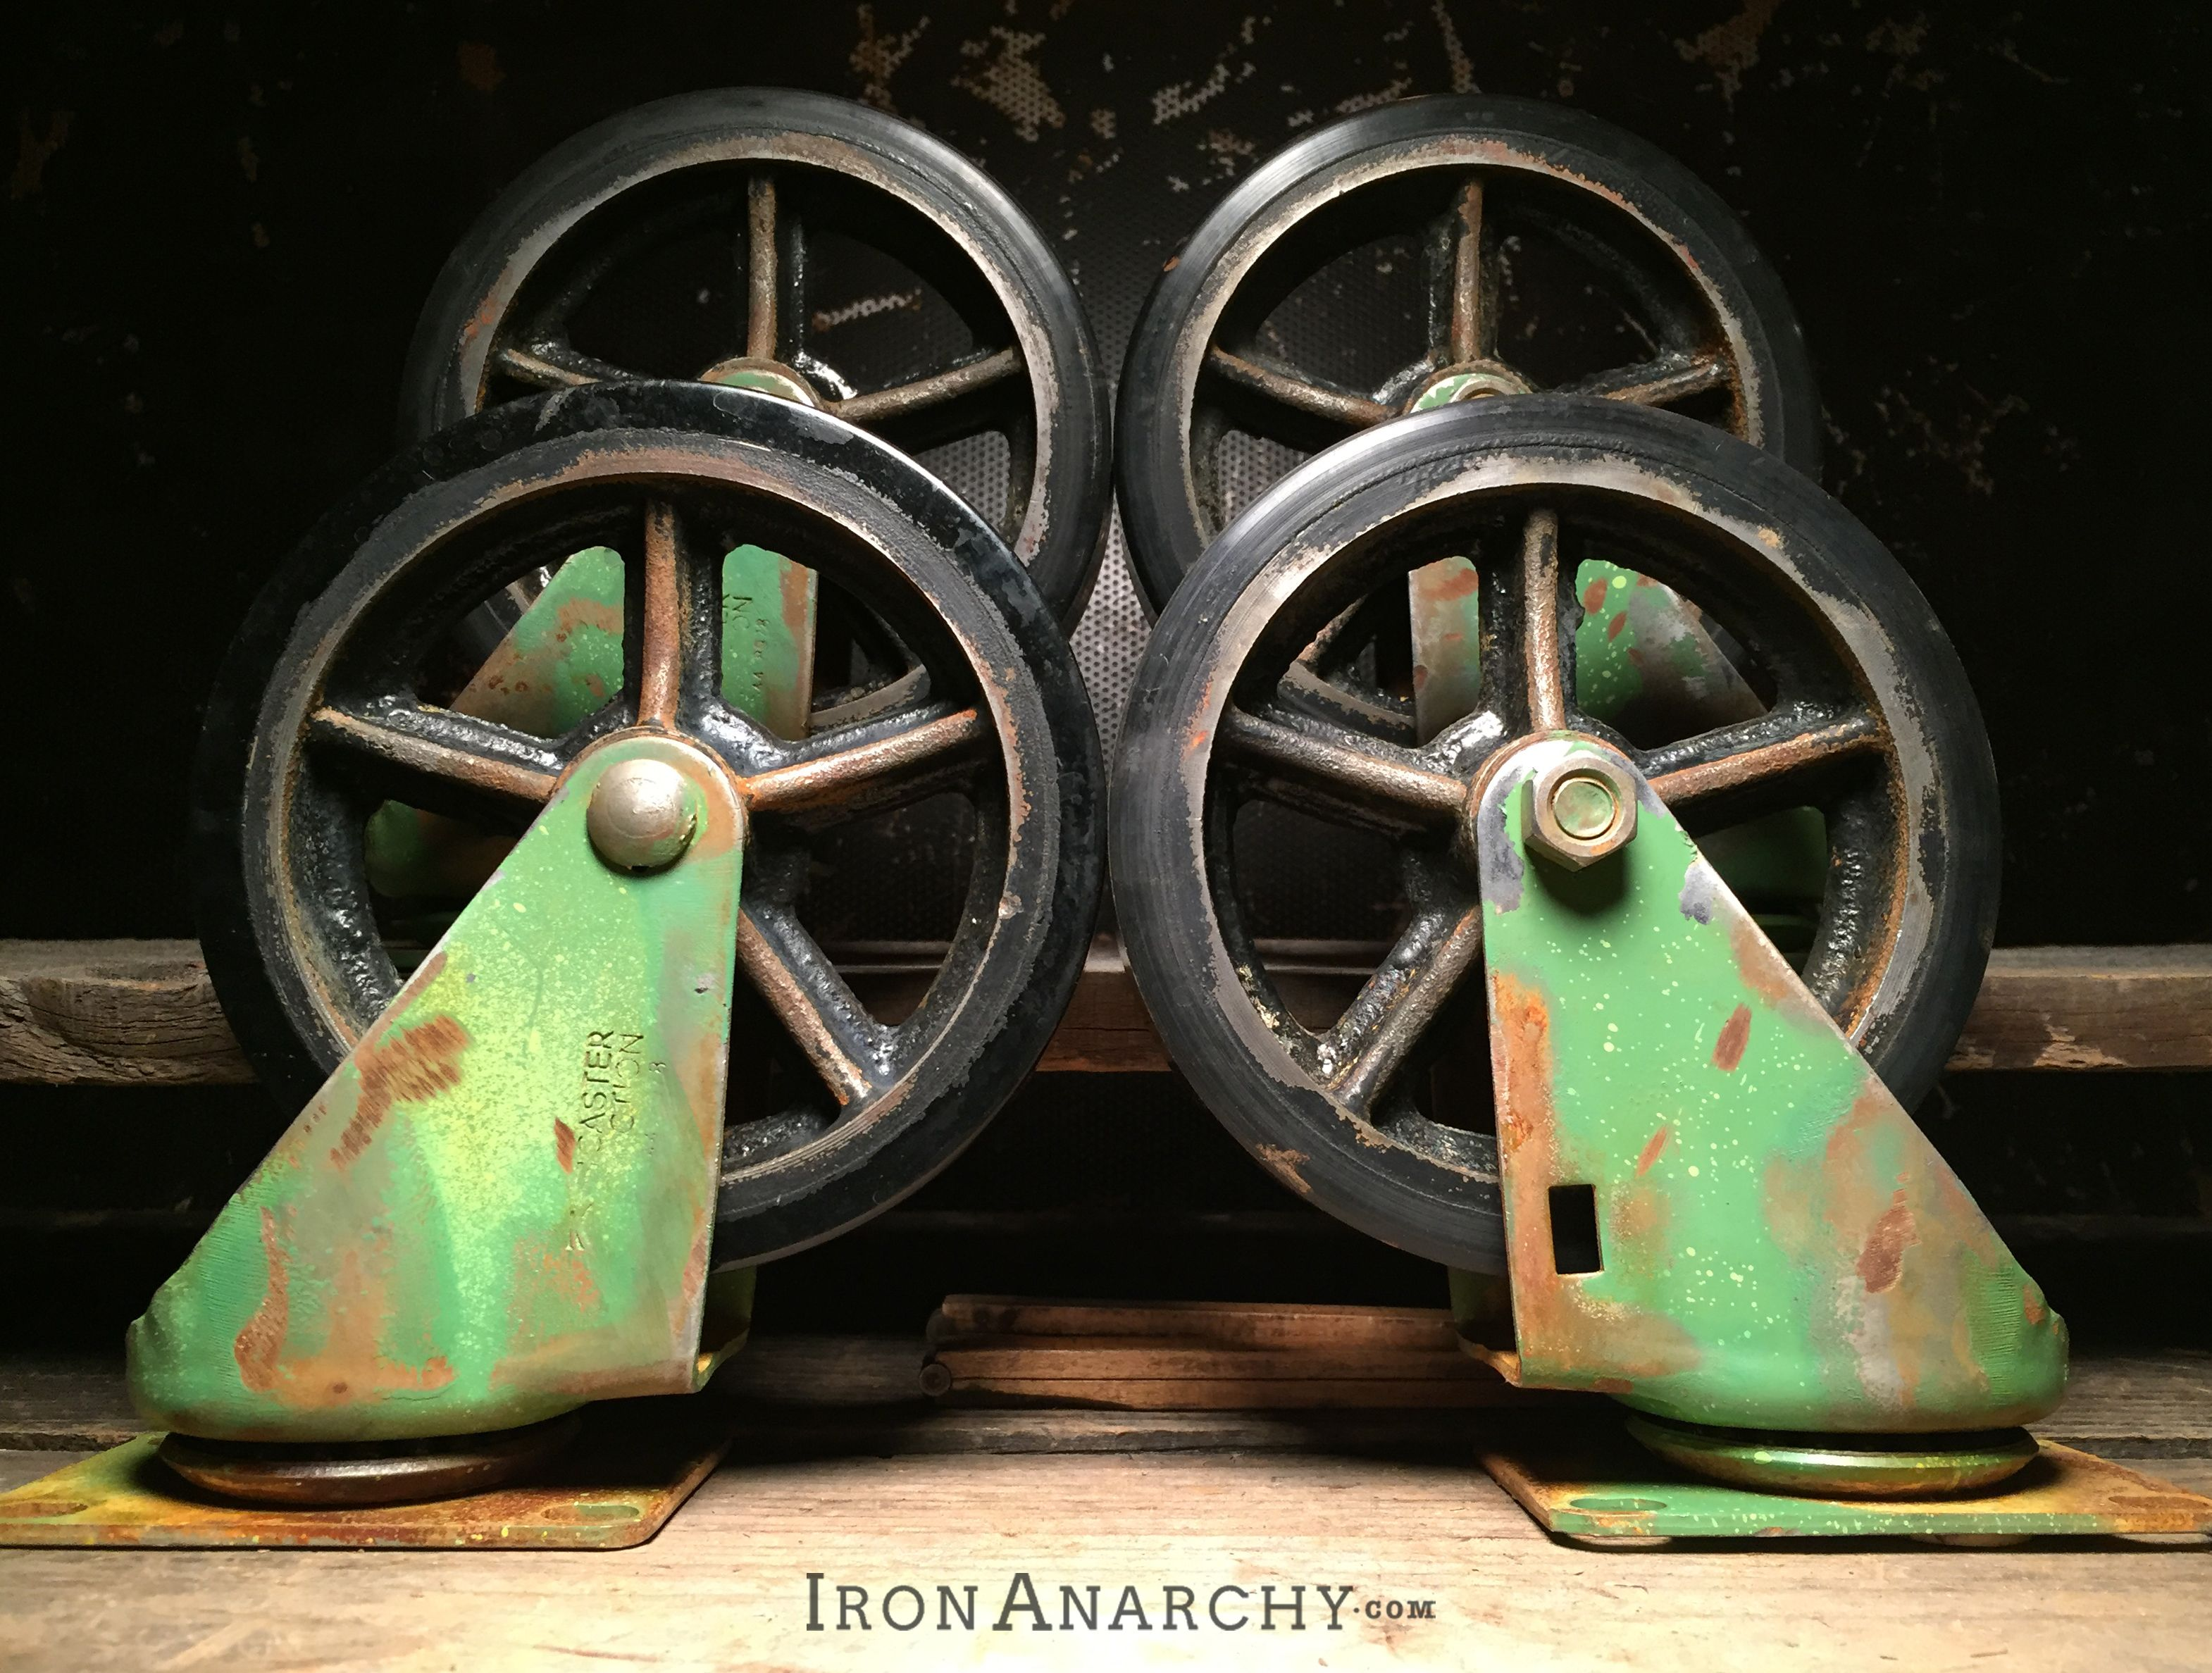 Vintage Industrial Casters With A Custom Aged Green Paint Effect From Ironanarchy Com Industrial Casters Vintage Industrial Vintage Industrial Furniture